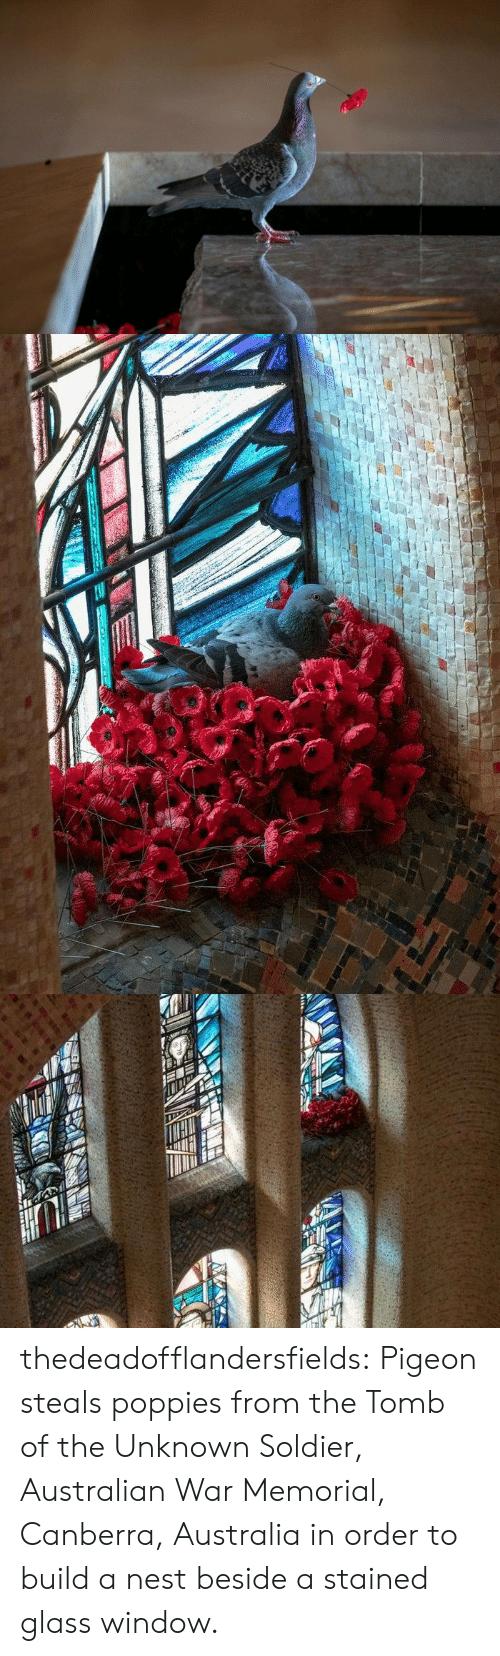 Tumblr, Australia, and Blog: thedeadofflandersfields:  Pigeon steals poppies from the Tomb of the Unknown Soldier, Australian War Memorial, Canberra, Australia in order to build a nest beside a stained glass window.